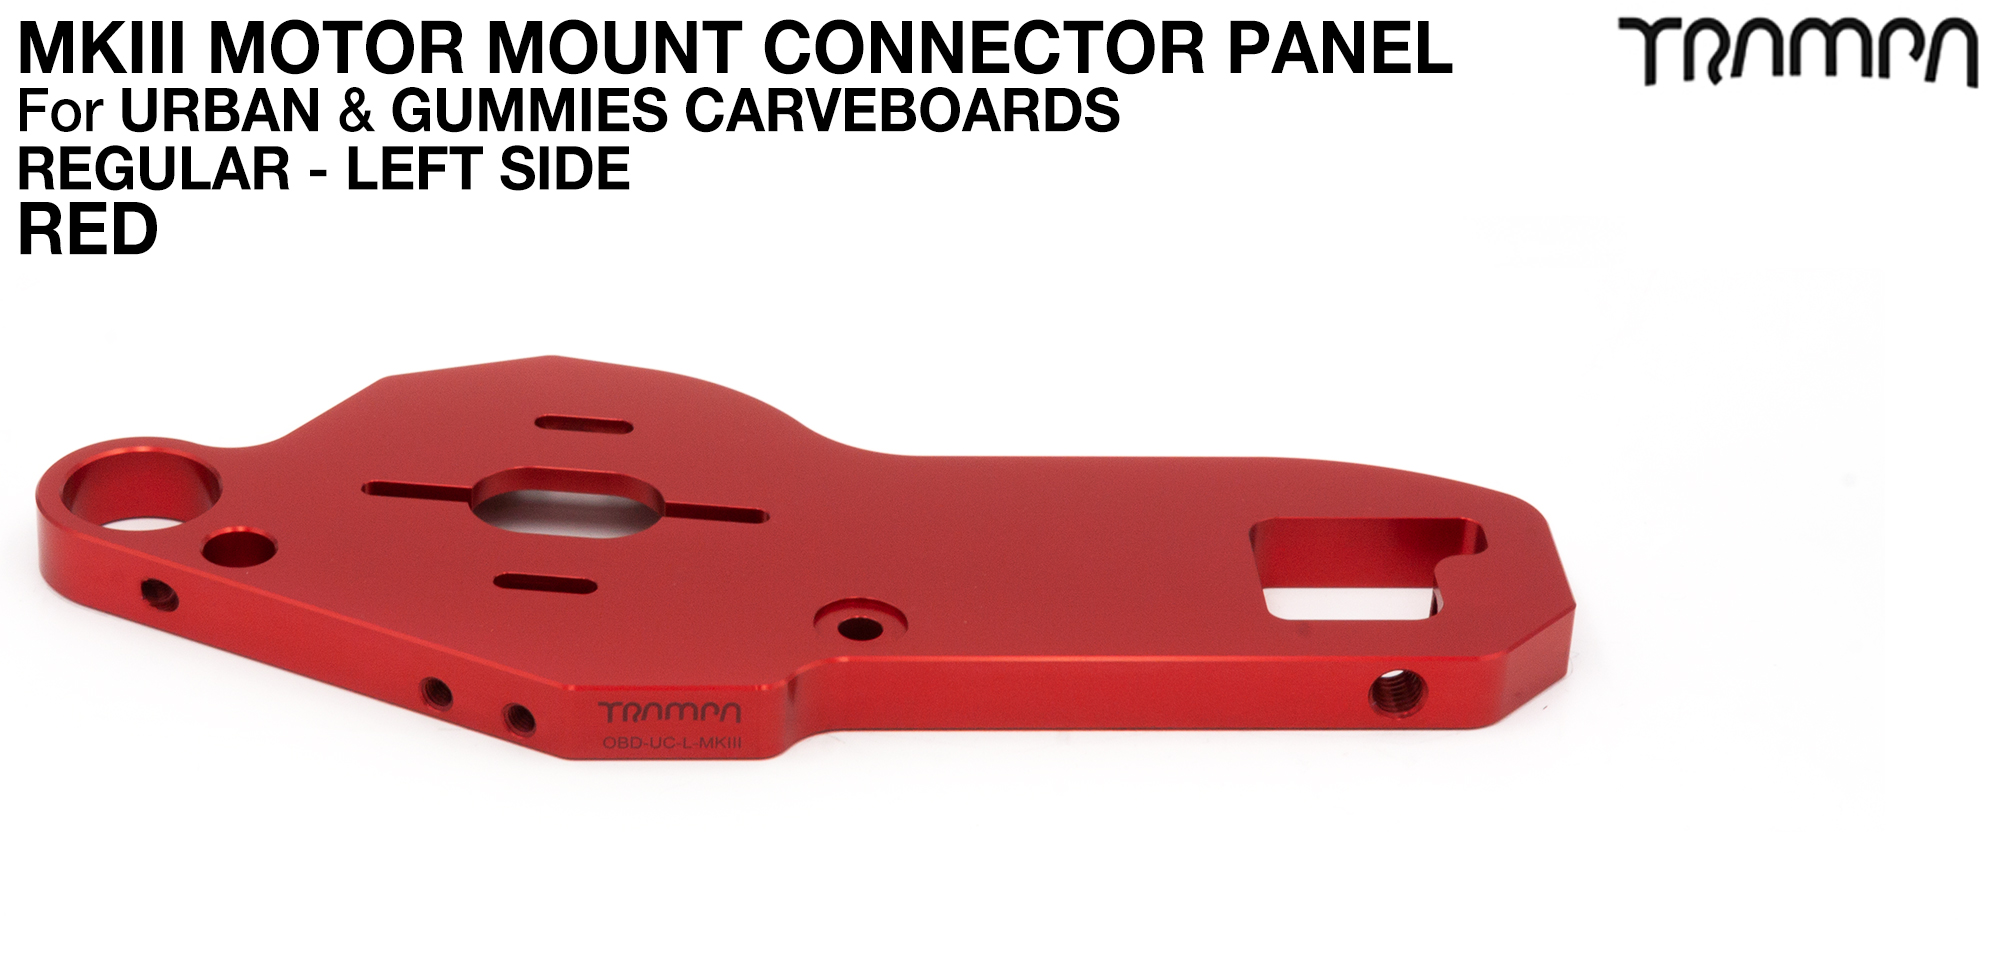 URBAN CARVE Motor Mount - REGULAR RED